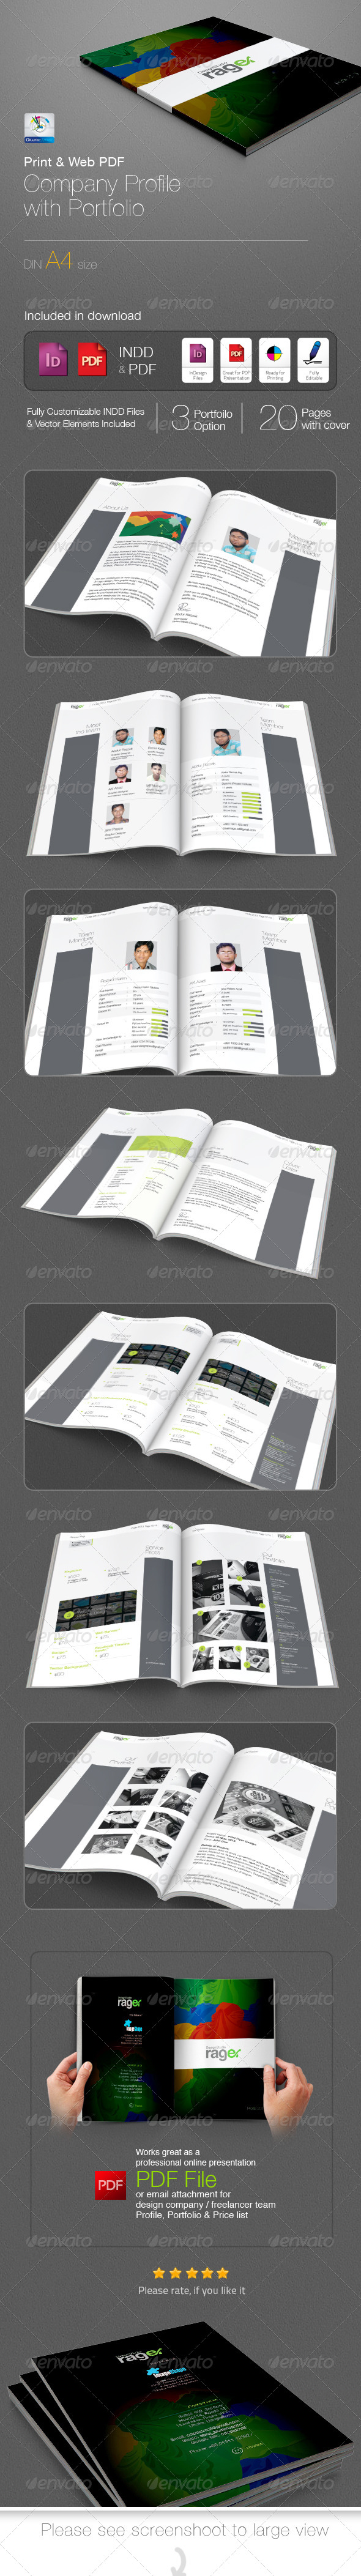 GraphicRiver Company Profile with Portfolio Booklet 5091907